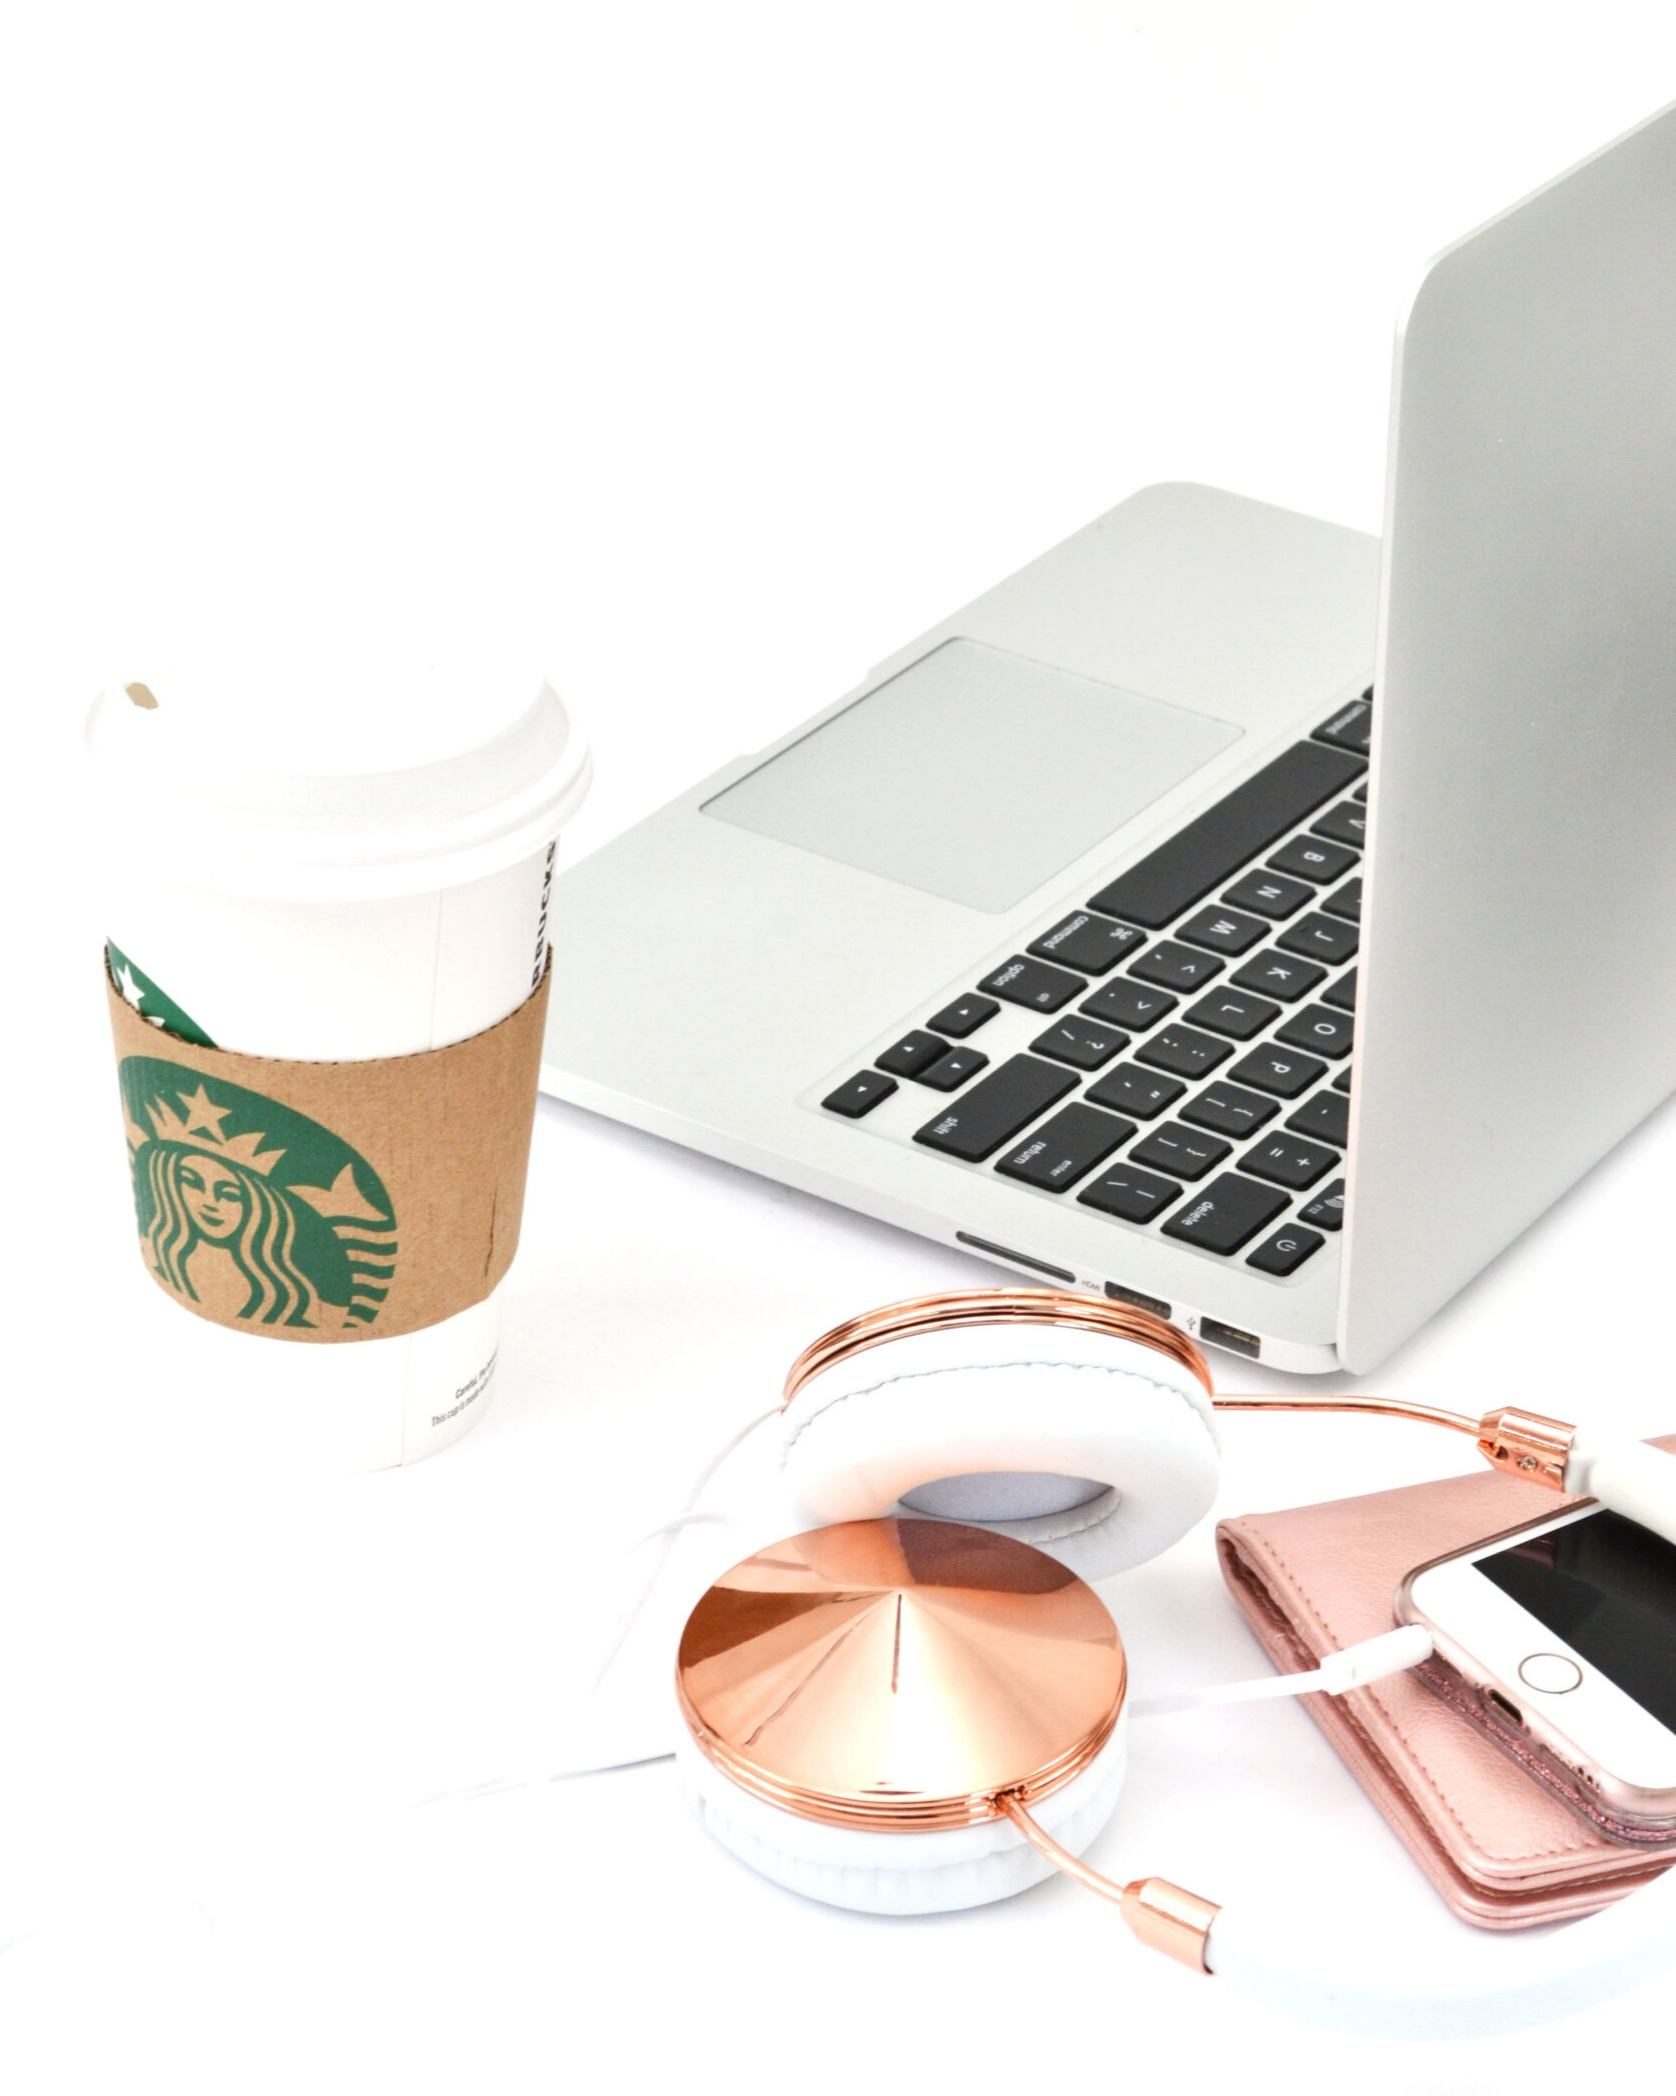 laptop, coffee, blogging, blog, photography blog, how to generate income during your slow season